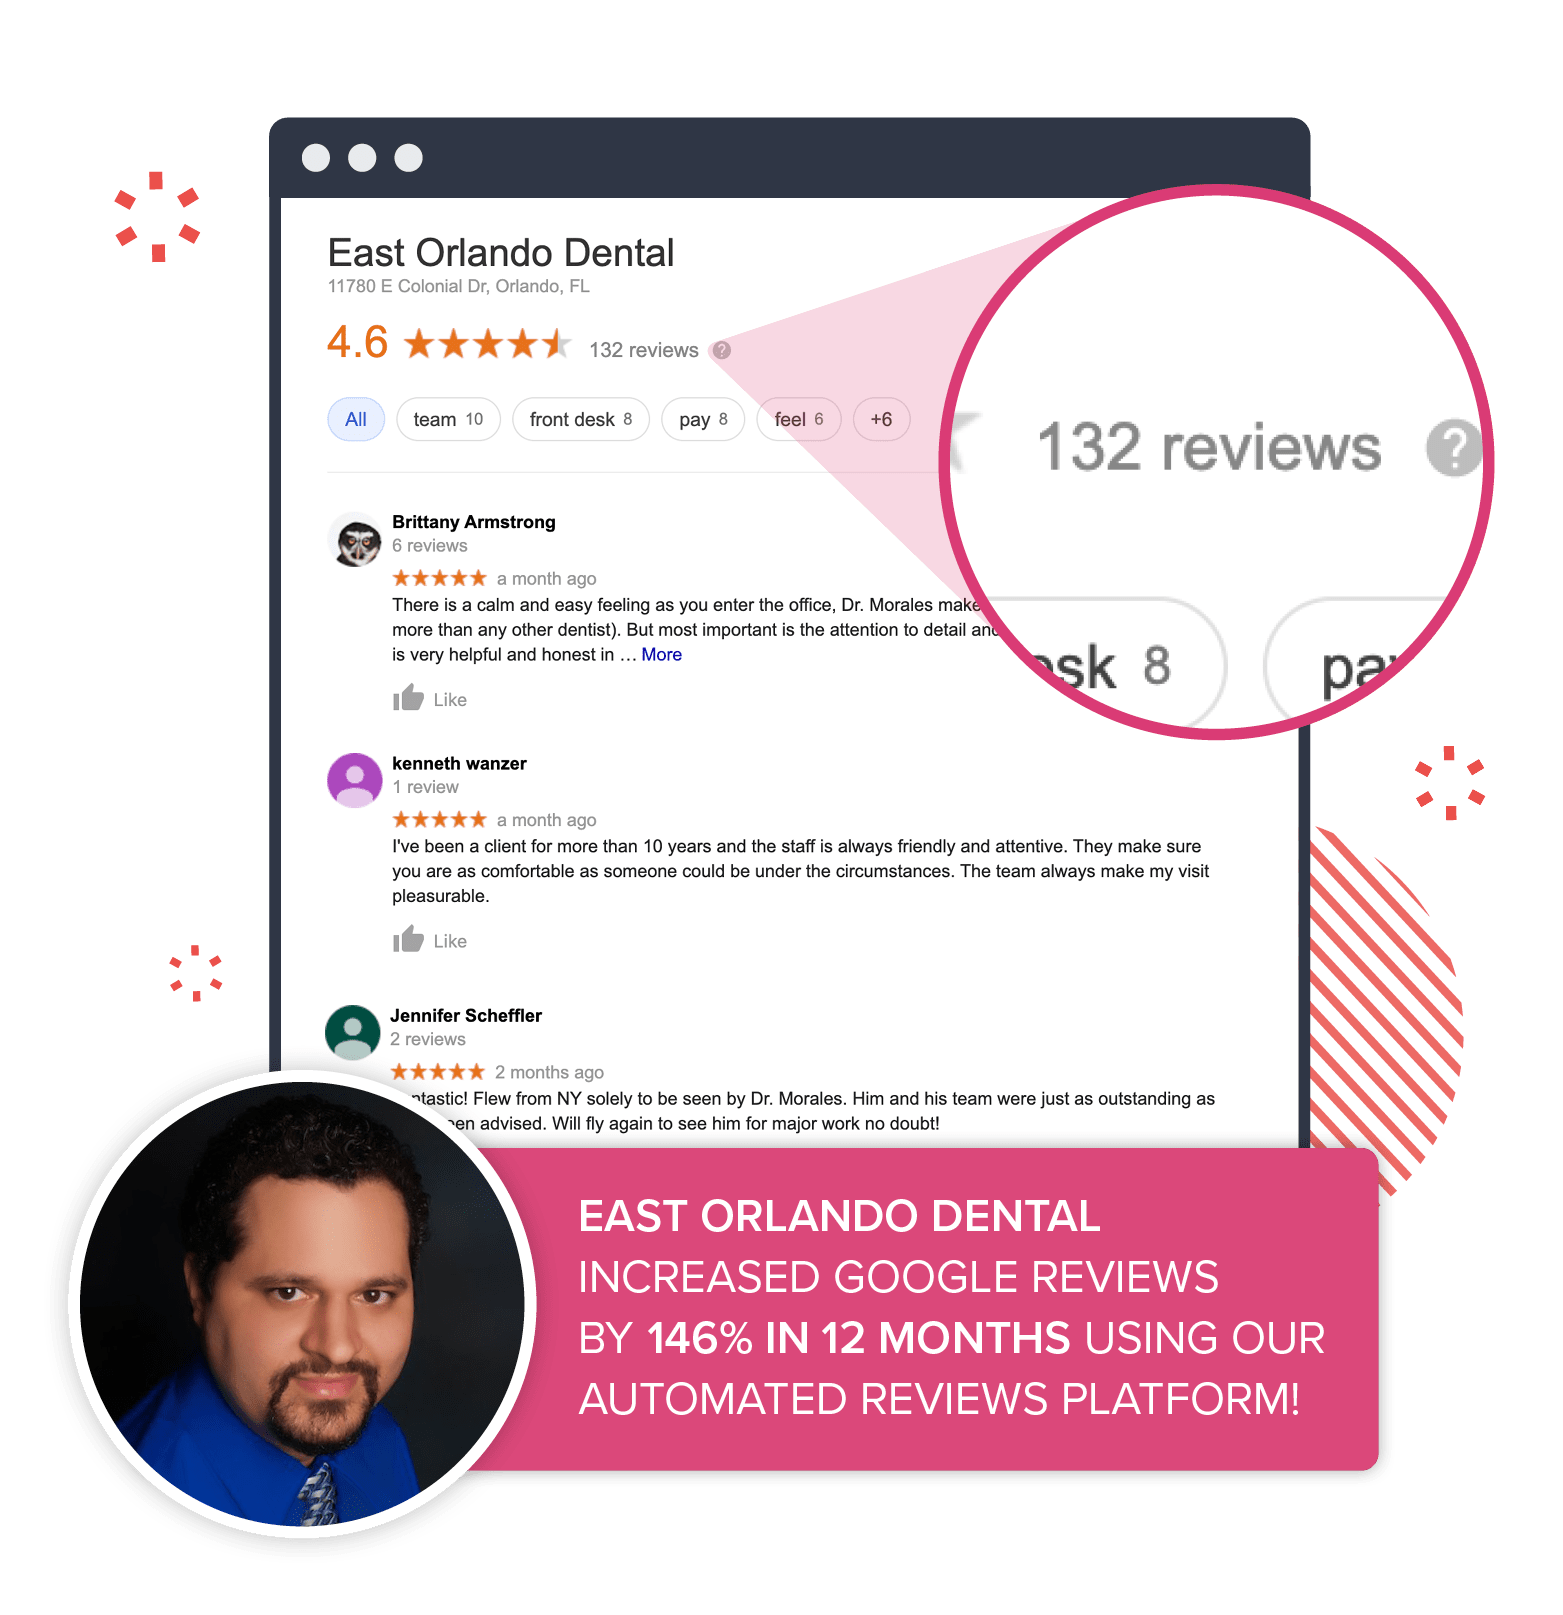 An example of East Orlando Dental's Google list, which increased in reviews by 146% using our automated platform.